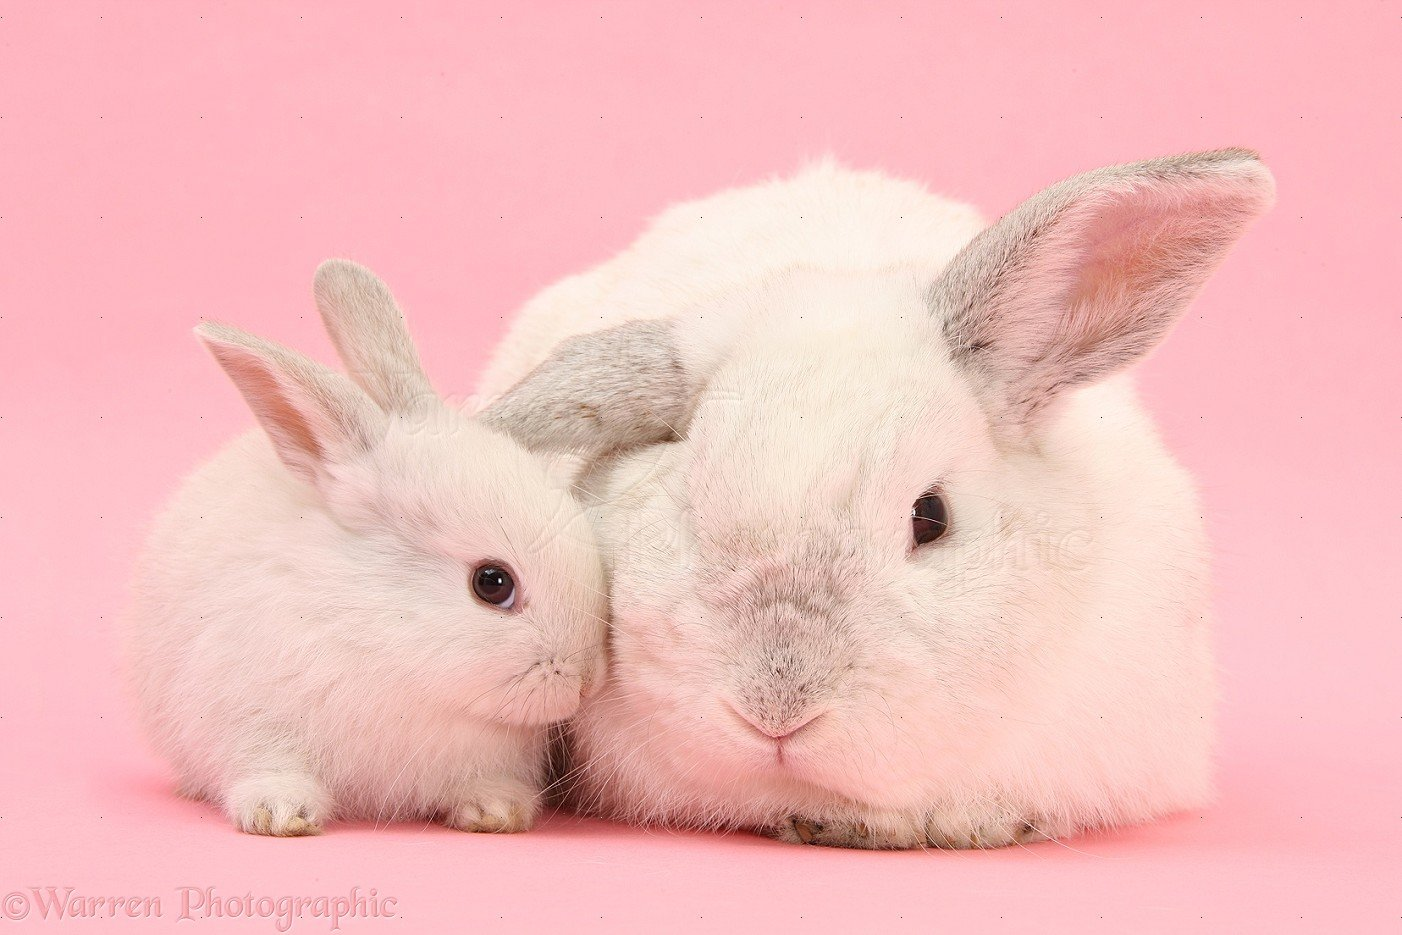 Free Download White Lop Rabbits On Pink Background Photo Wp27540 1402x935 For Your Desktop Mobile Tablet Explore 46 Pink Bunny Wallpaper Baby Bunny Wallpaper Cute Bunnies Wallpaper Hd Bunny Wallpaper